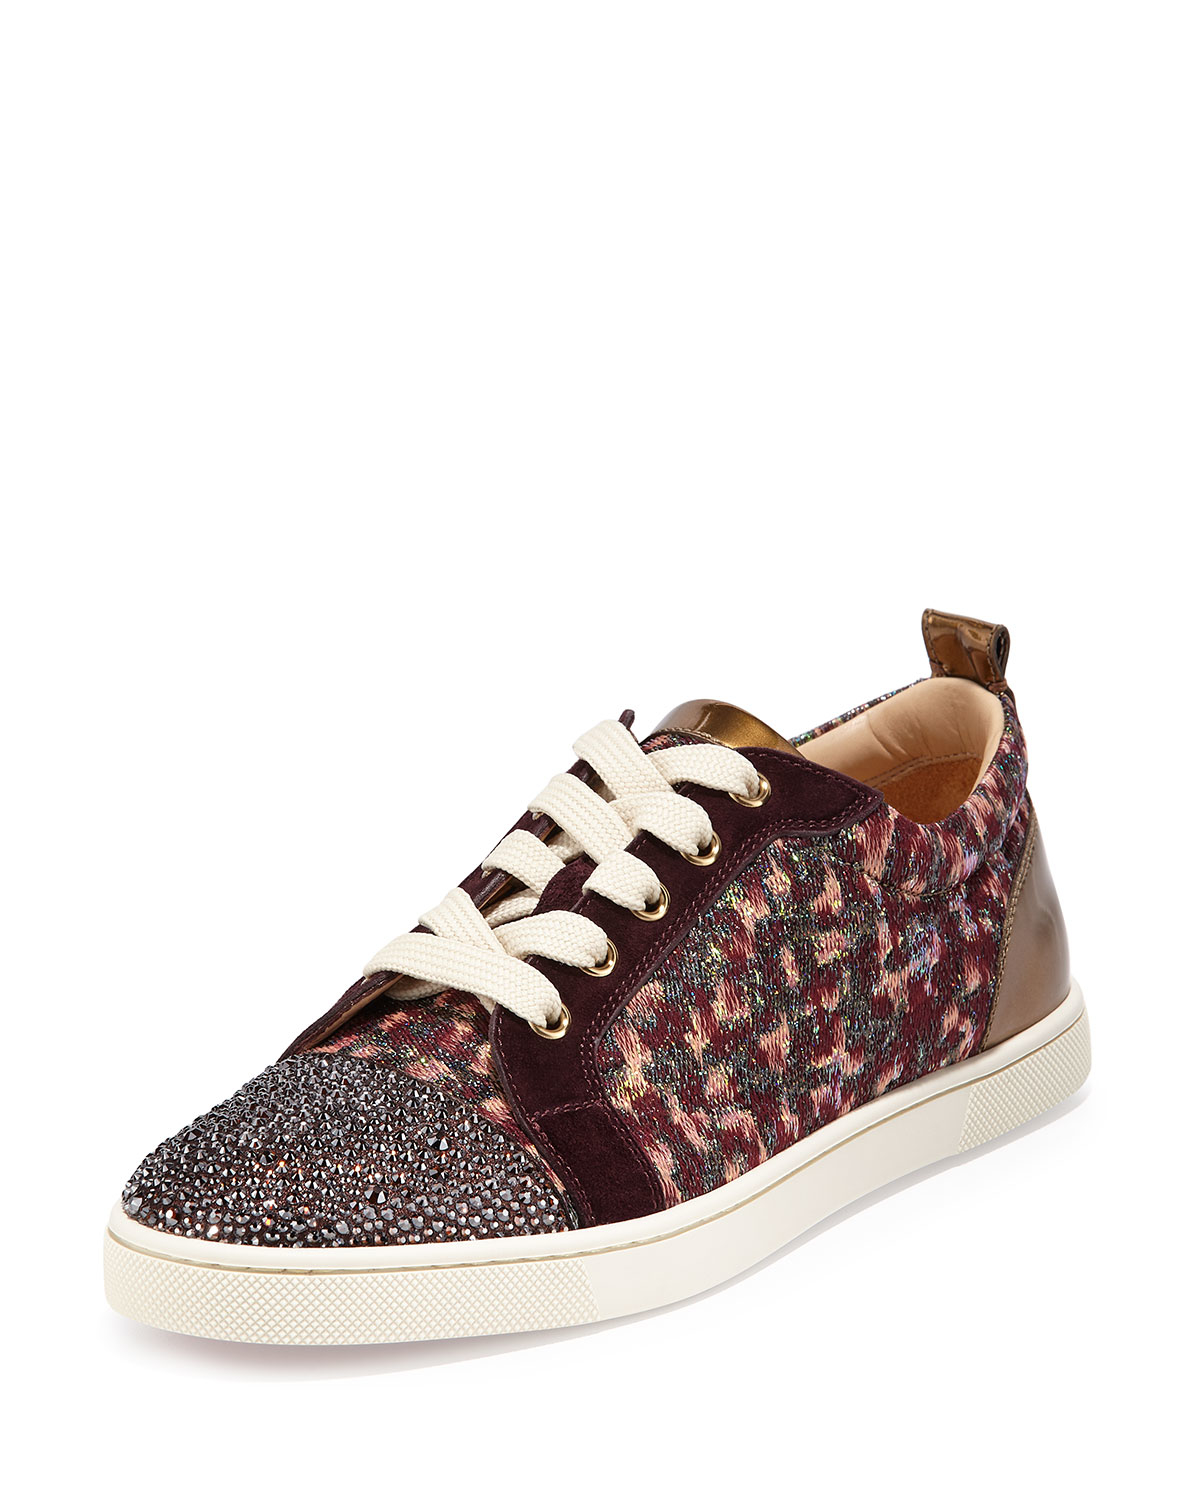 christian louboutin gondola strass low top sneaker in. Black Bedroom Furniture Sets. Home Design Ideas